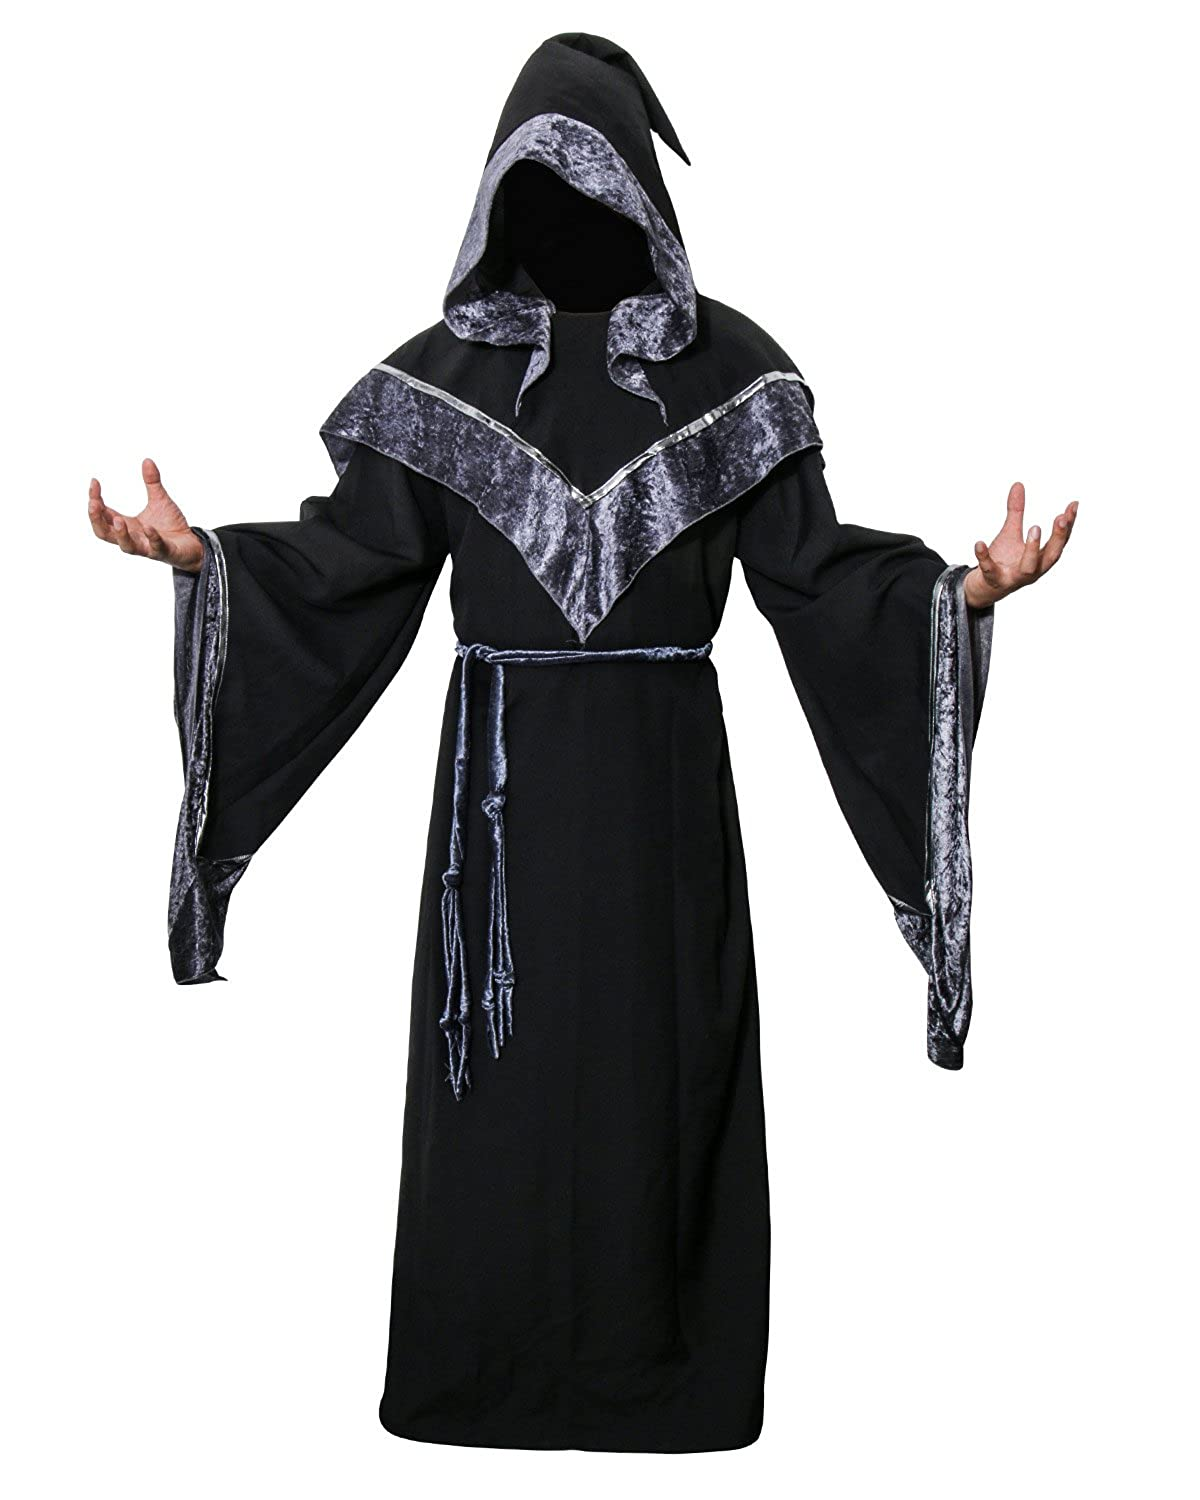 Amazon.com Adult Menu0027s Dark Mystic Sorcerer Robe Halloween Cosplay Costume with Hooded Cape Clothing  sc 1 st  Amazon.com & Amazon.com: Adult Menu0027s Dark Mystic Sorcerer Robe Halloween Cosplay ...